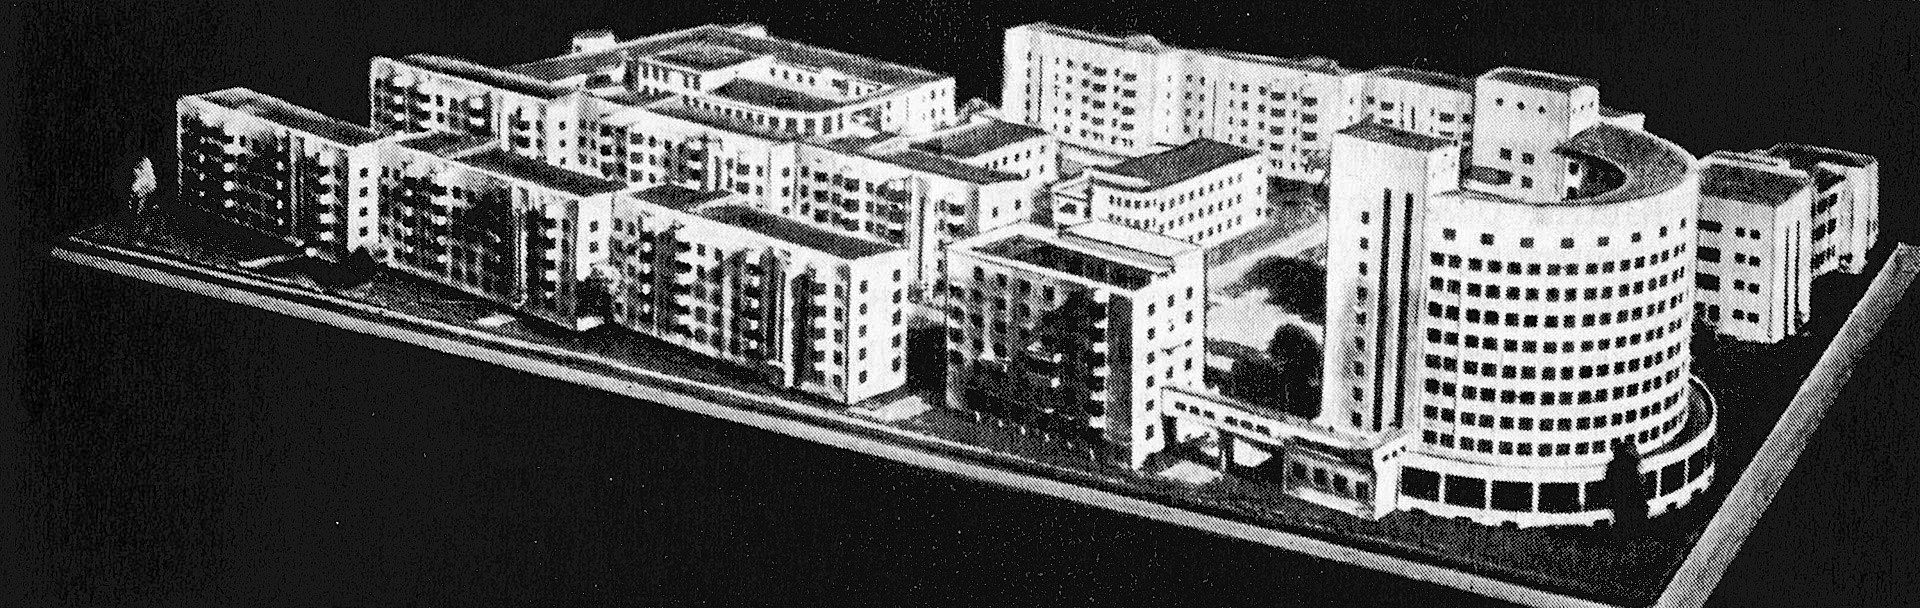 Original plan for Chekists' Village by Ivan Antonov and Veniamin Sokolov in 1929